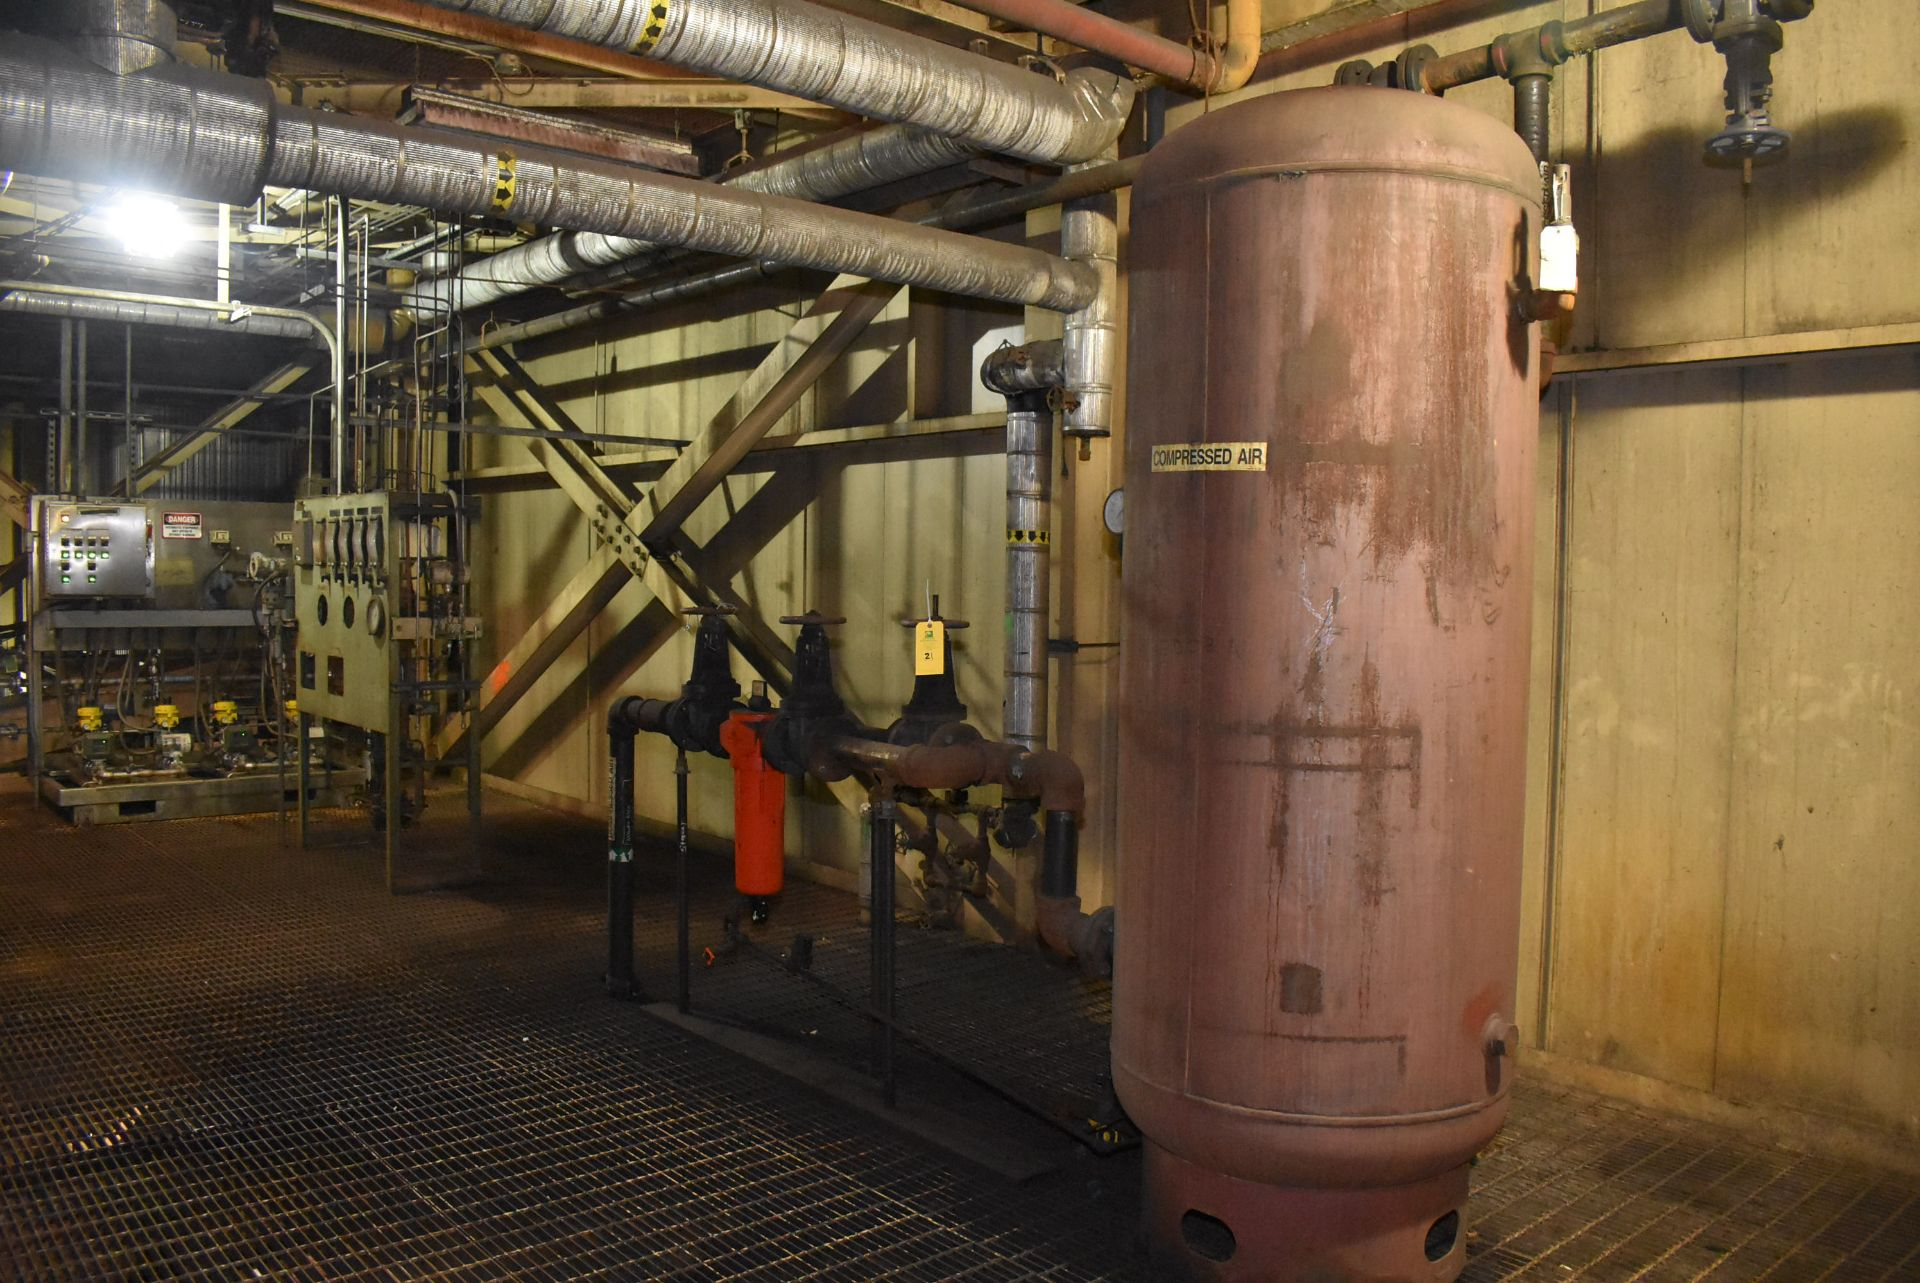 Lot 21 - Compressed Air Holding Tank, Includes 3-Valves